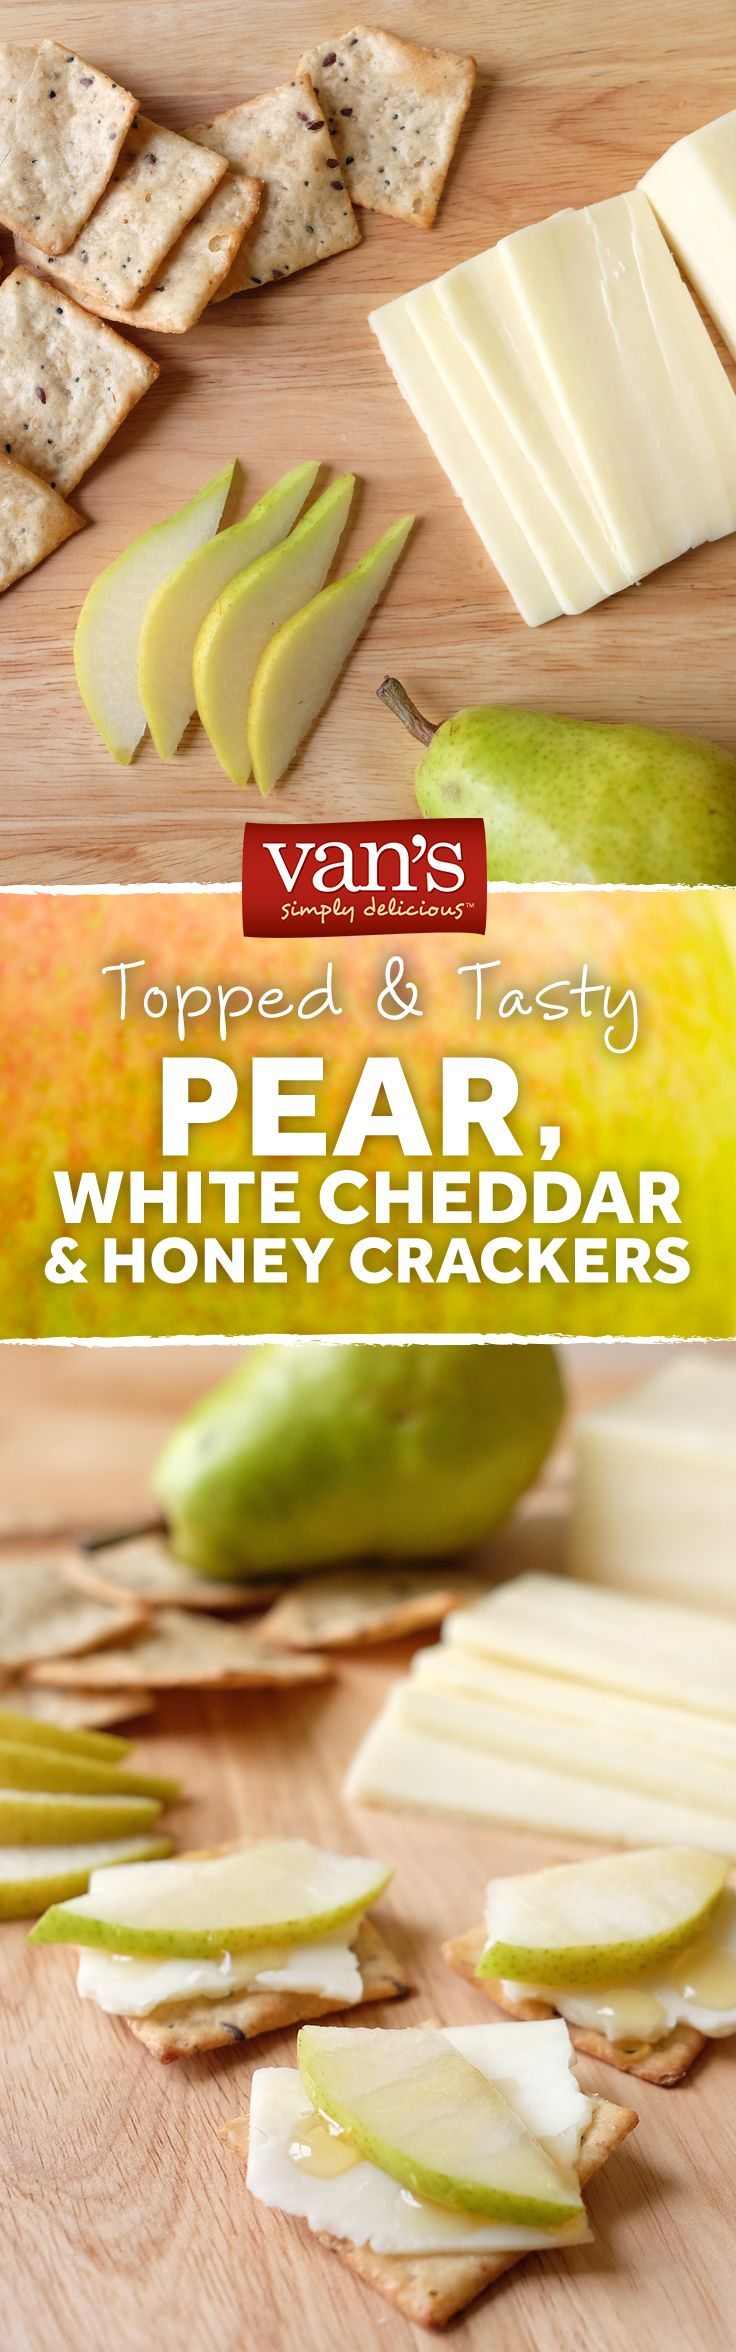 A little bit sweet, a little bit salty. Try this tasty combo with your favorite Van's cracker! Toss on some pears, honey and white cheddar cheese.